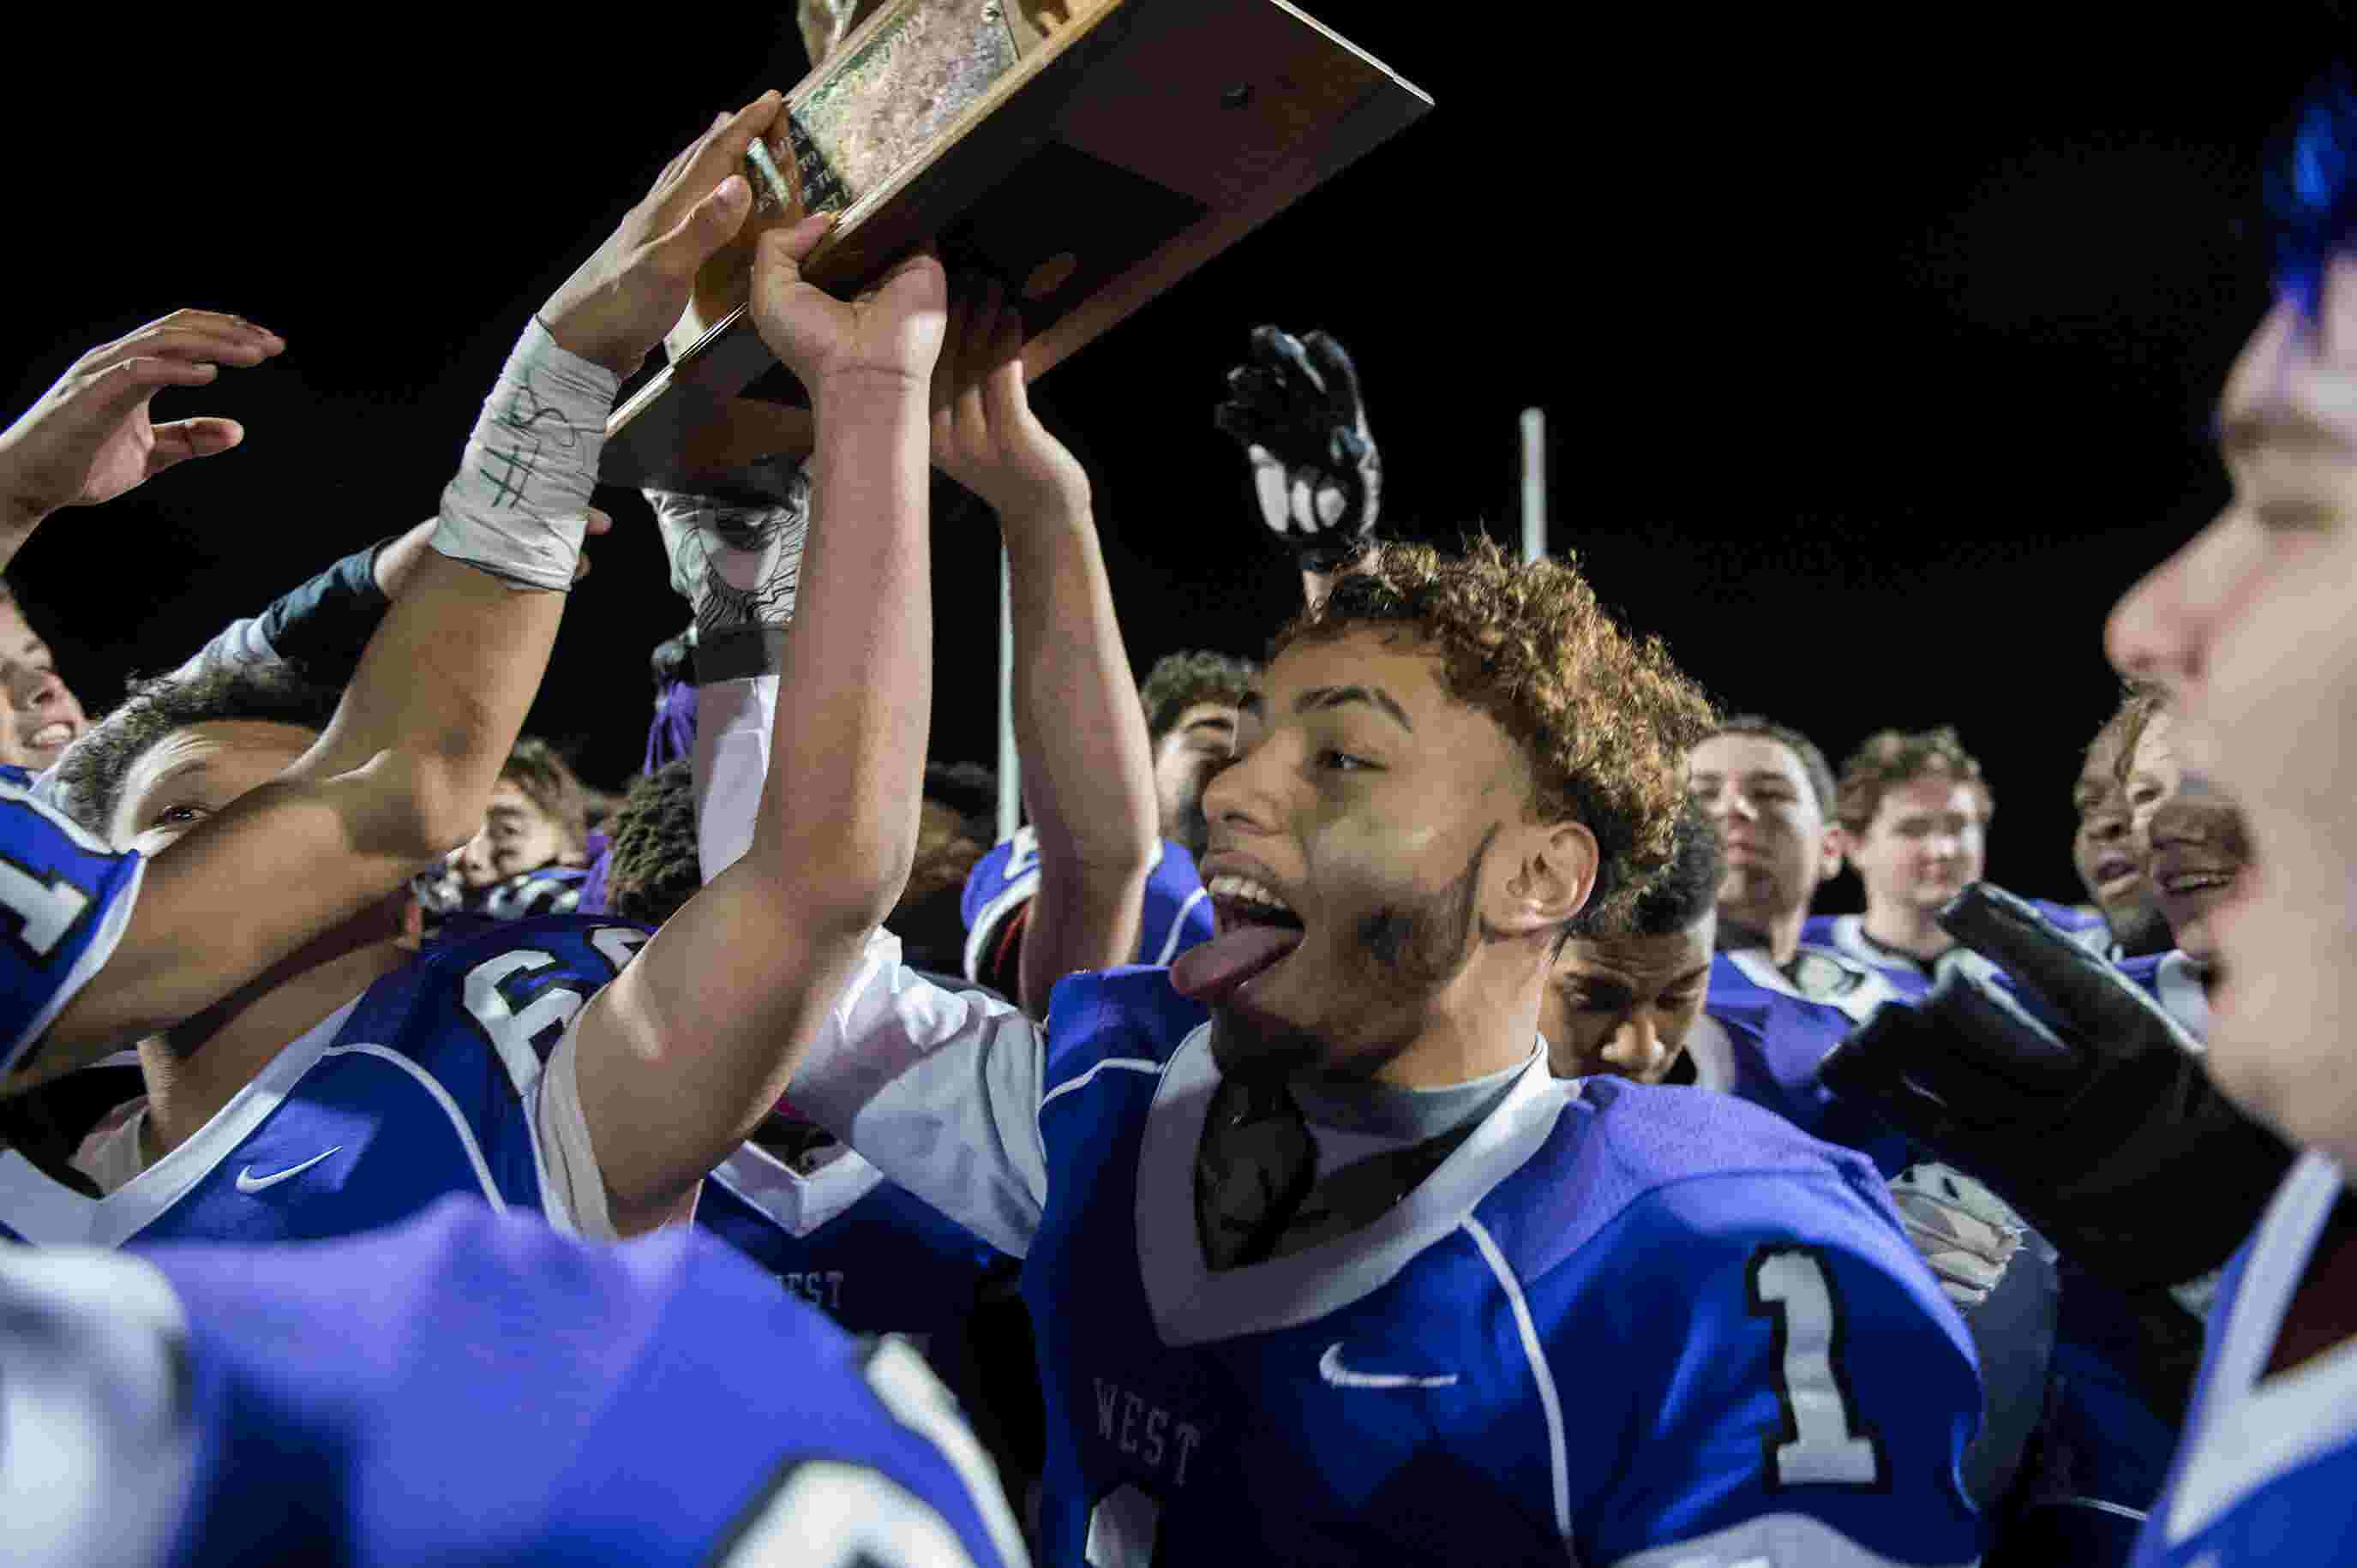 WATCH: West beats East in annual Thanksgiving match